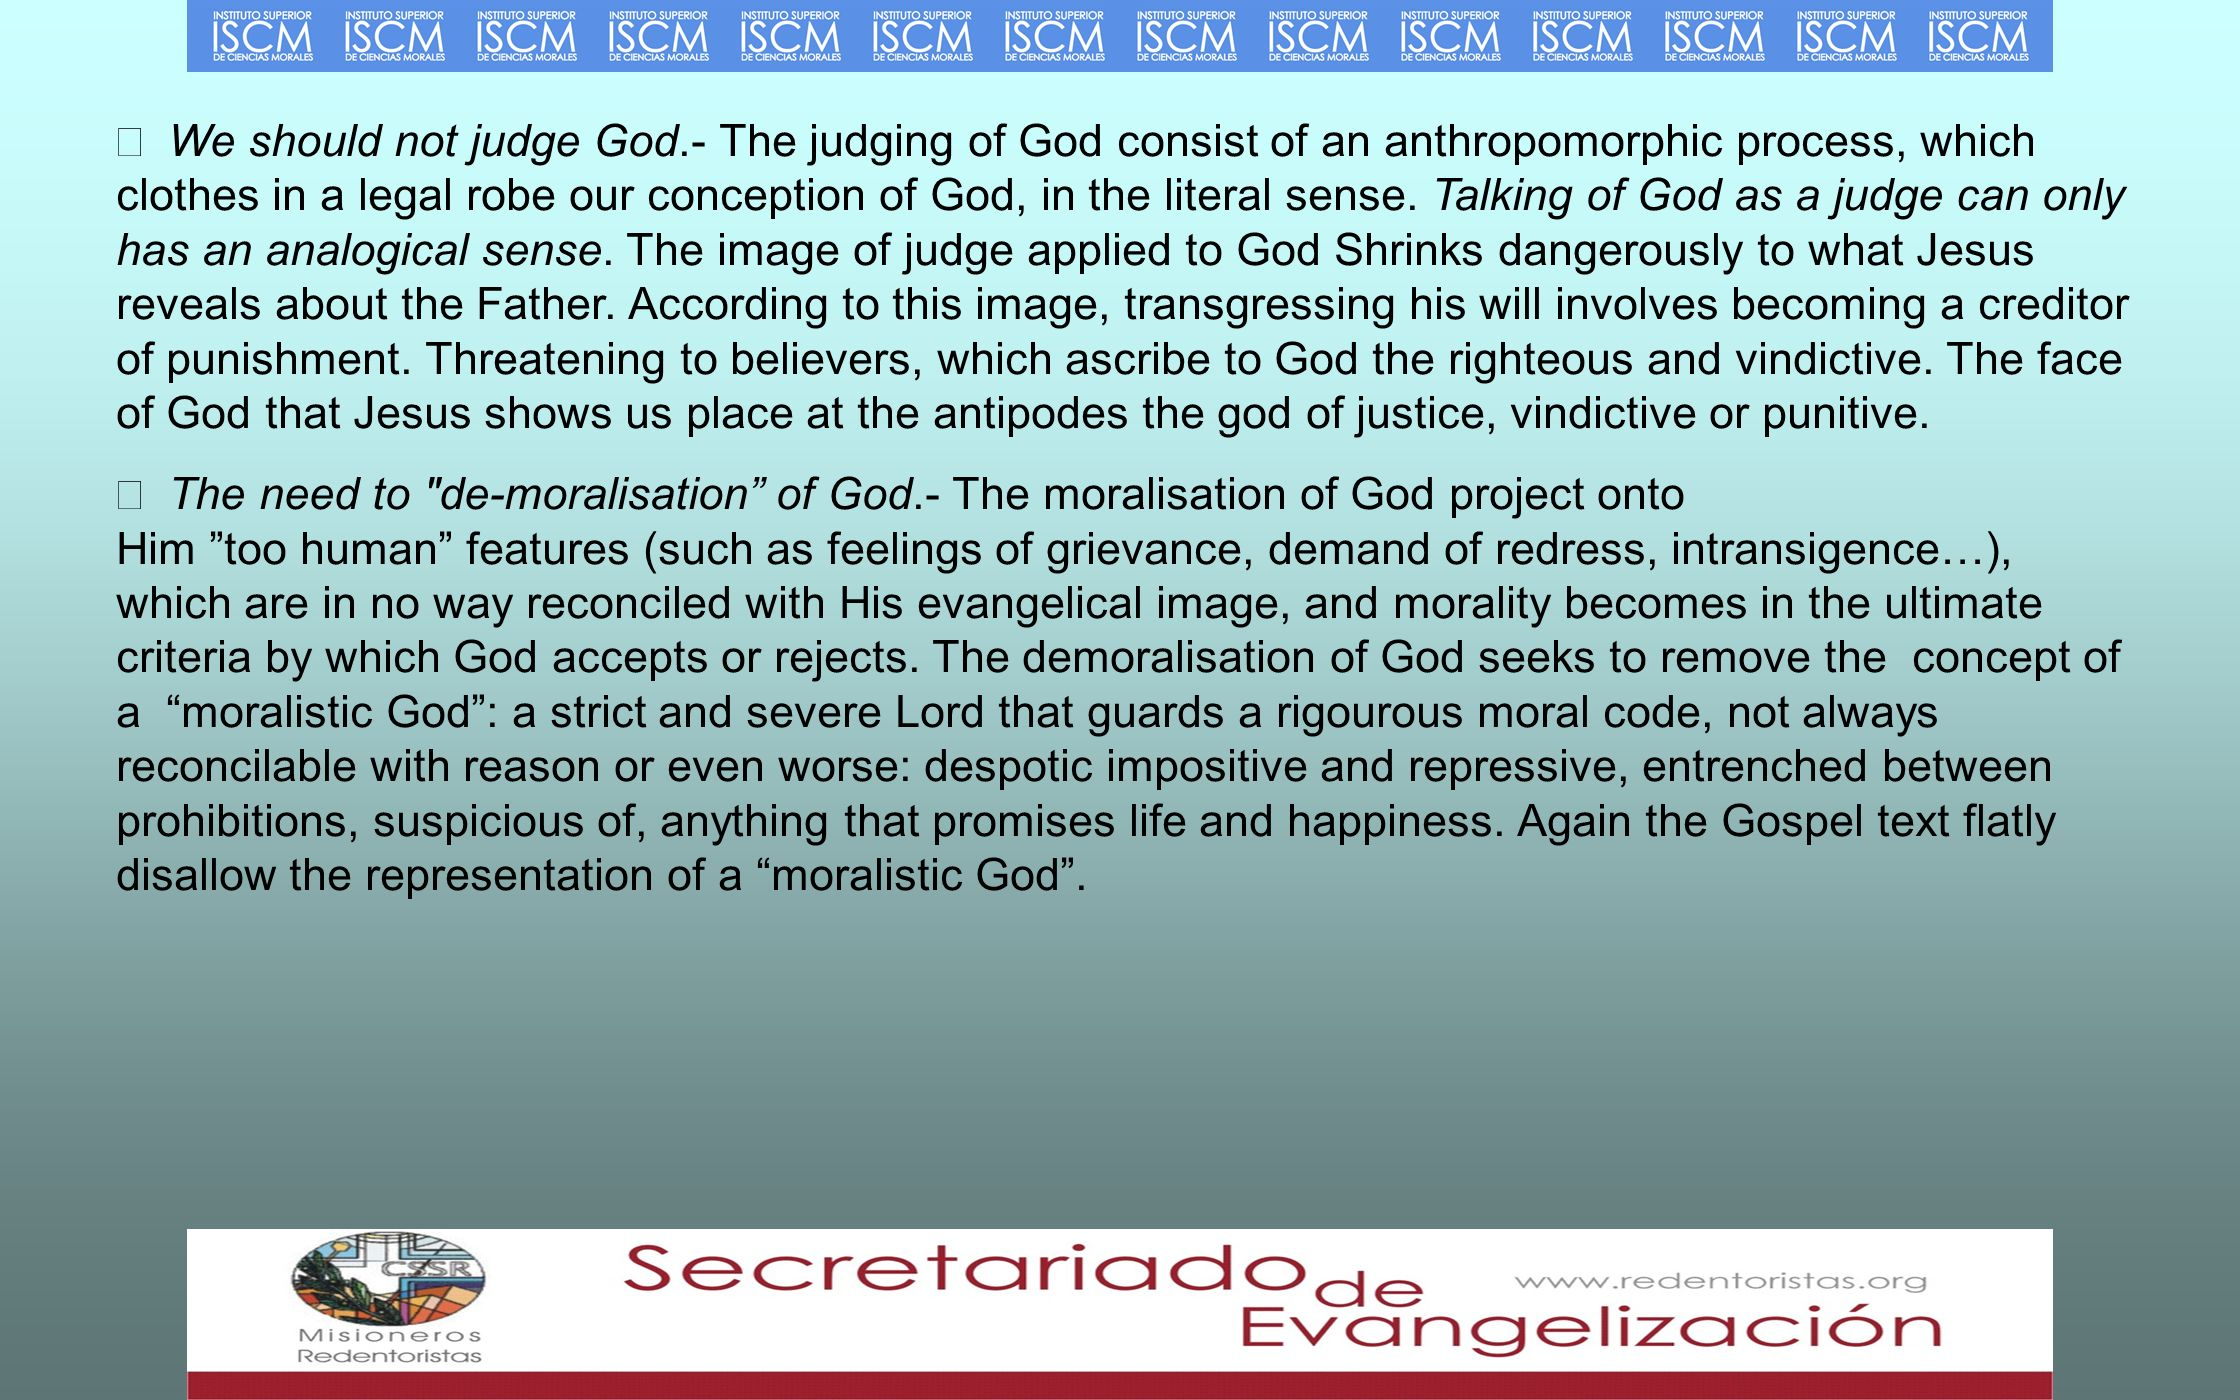 We should not judge God.- The judging of God consist of an anthropomorphic process, which clothes in a legal robe our conception of God, in the literal sense.